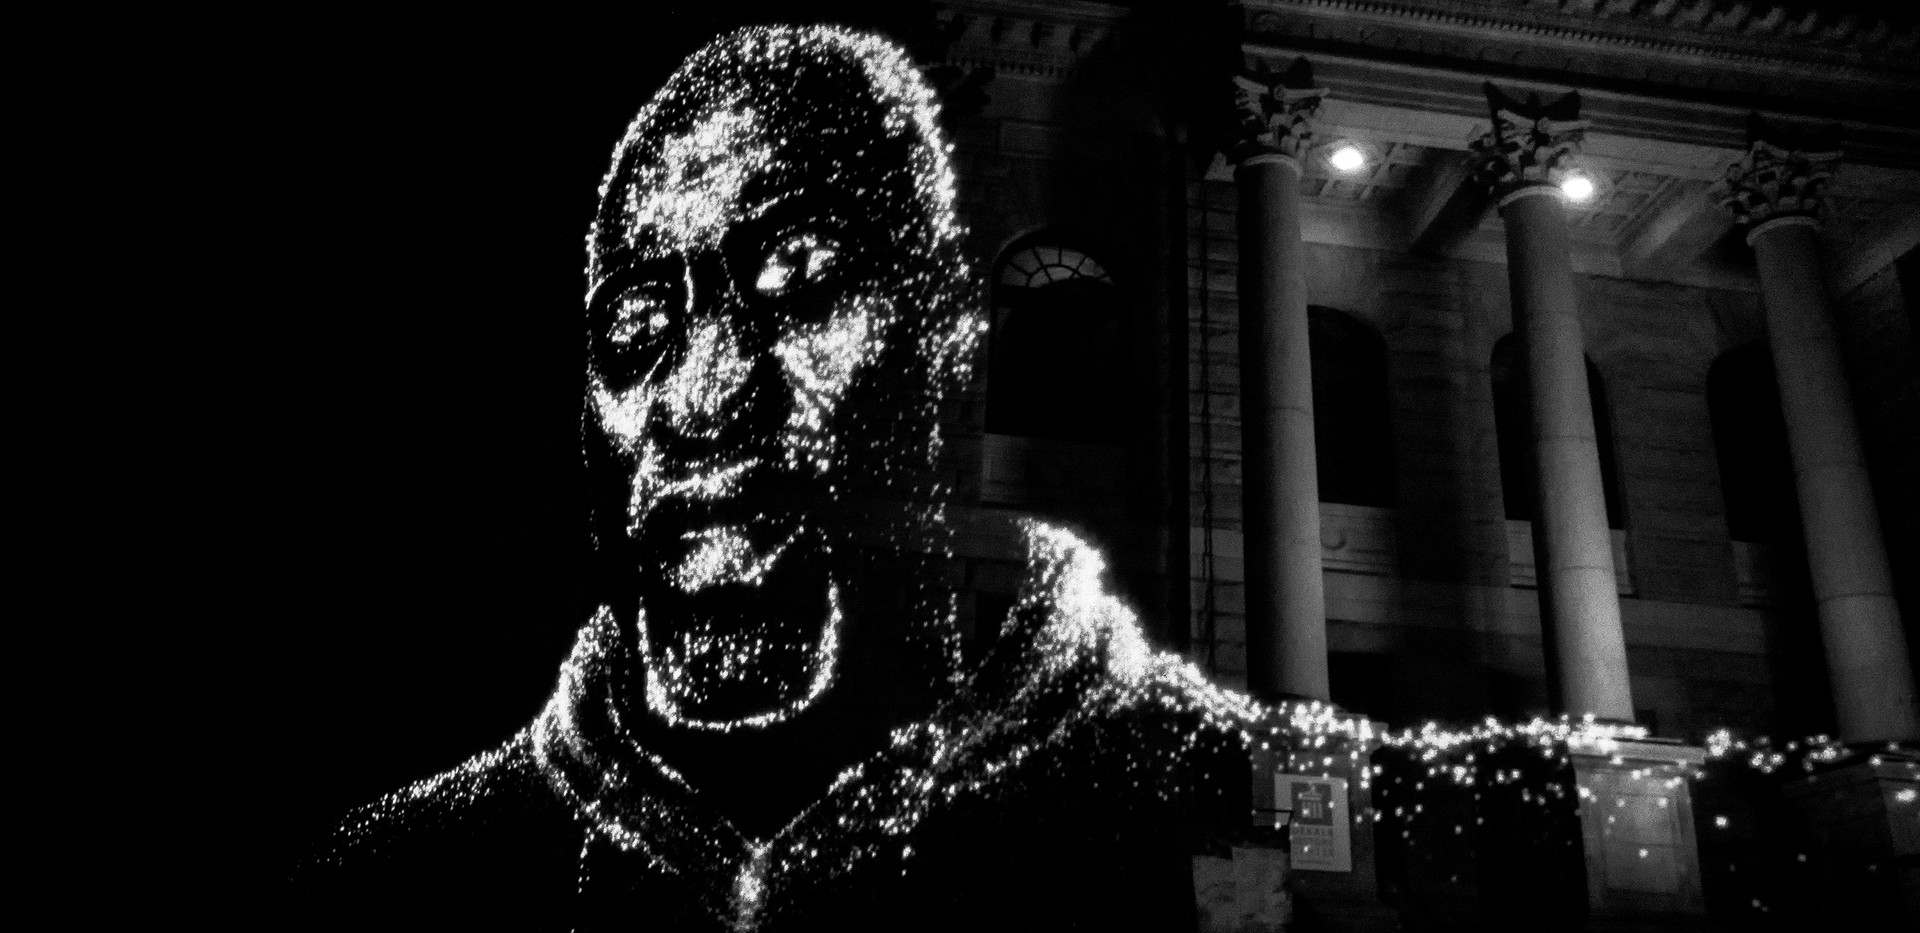 Hologram image of George Floyd, murdered by police in Minneapolis in May 2020, is displayed where a Confederate monument once stood in Decatur Square in Atlanta, GA